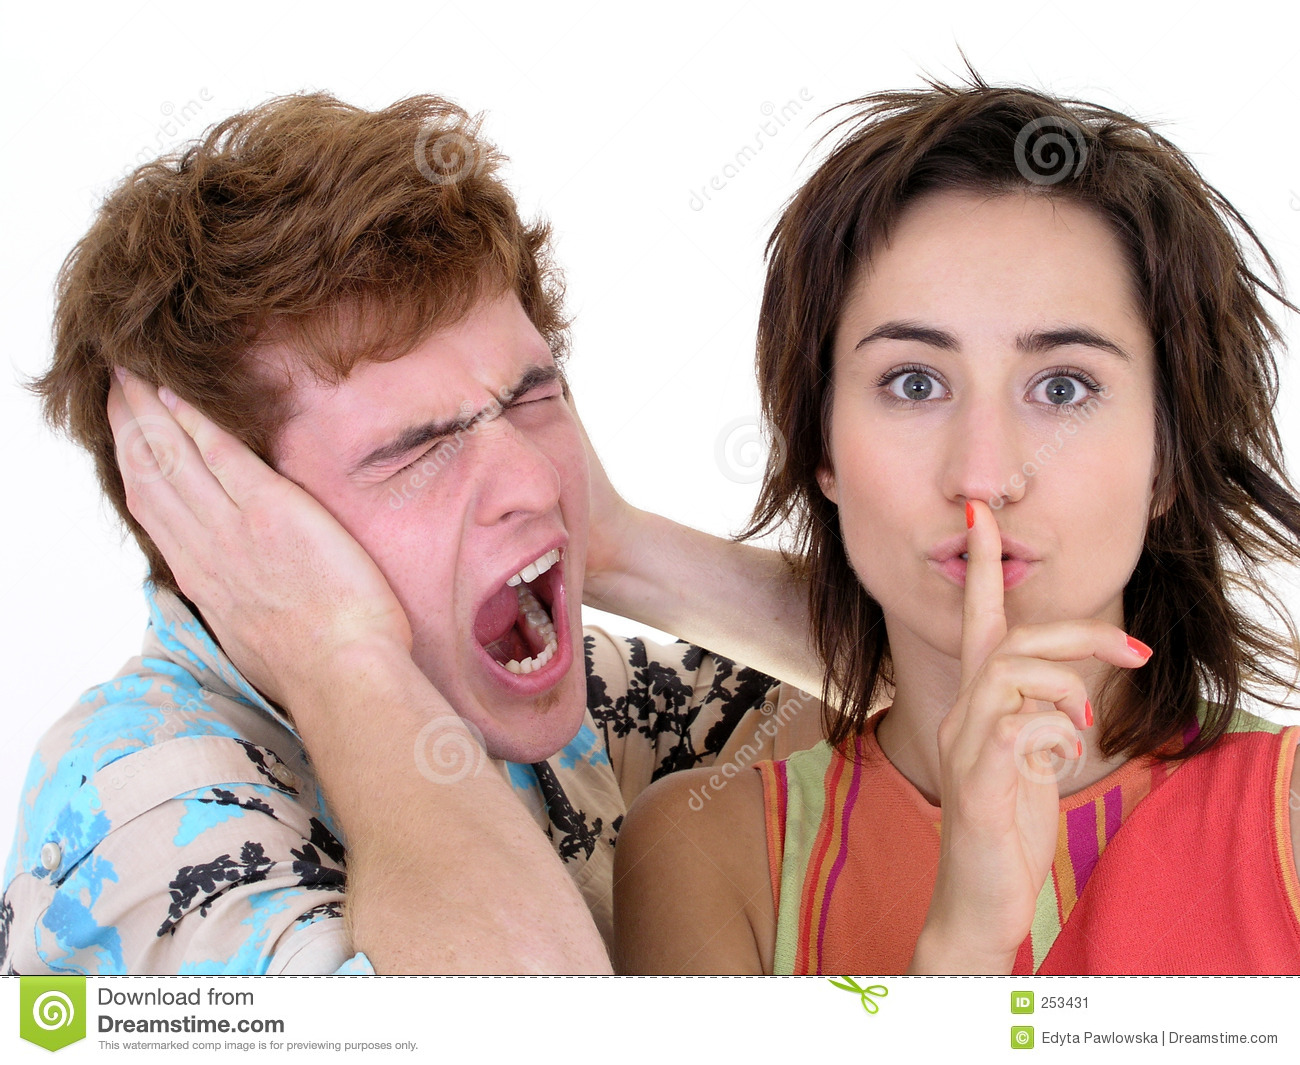 Man Screaming and Woman Making Silence Gesture